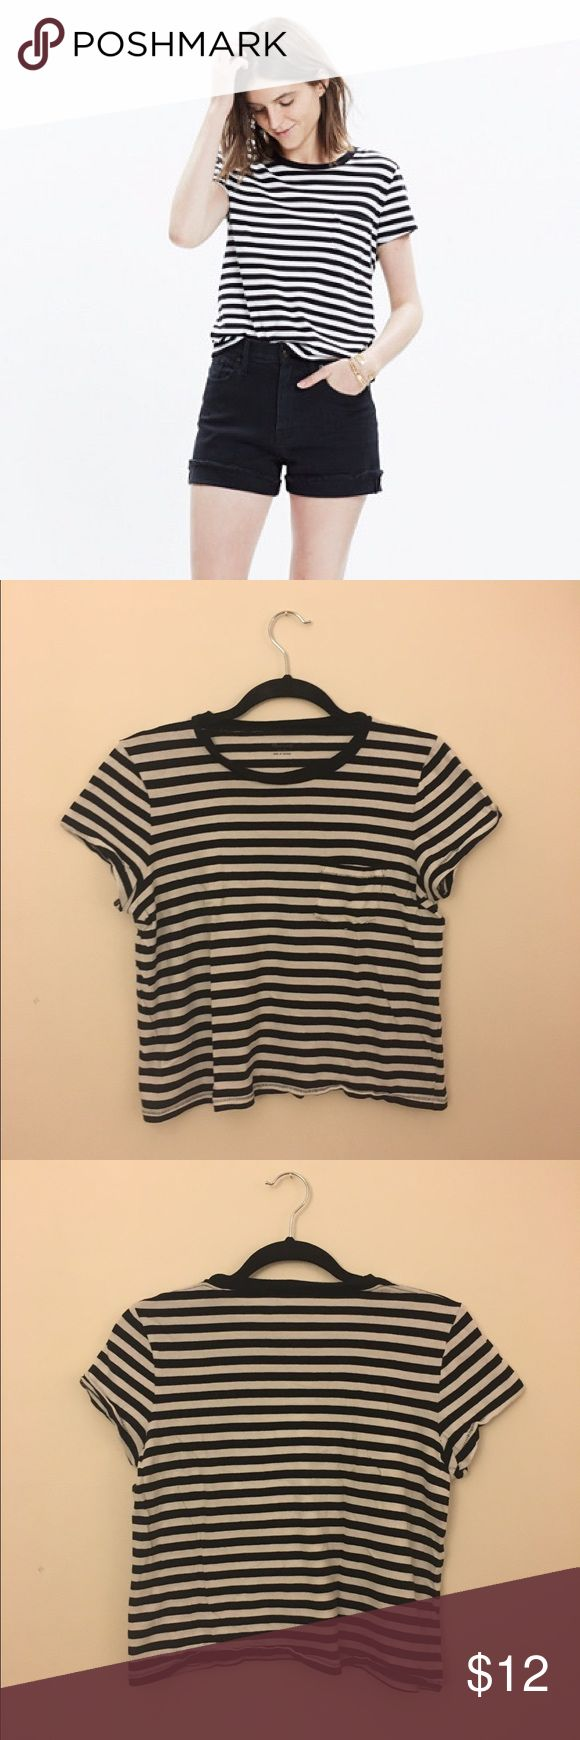 Madewell Striped Radio Tee A classic boxy striped shirt. Black and white, a bit cropped. Worn and washed a few times but still in great condition! Size small. Madewell Tops Tees - Short Sleeve